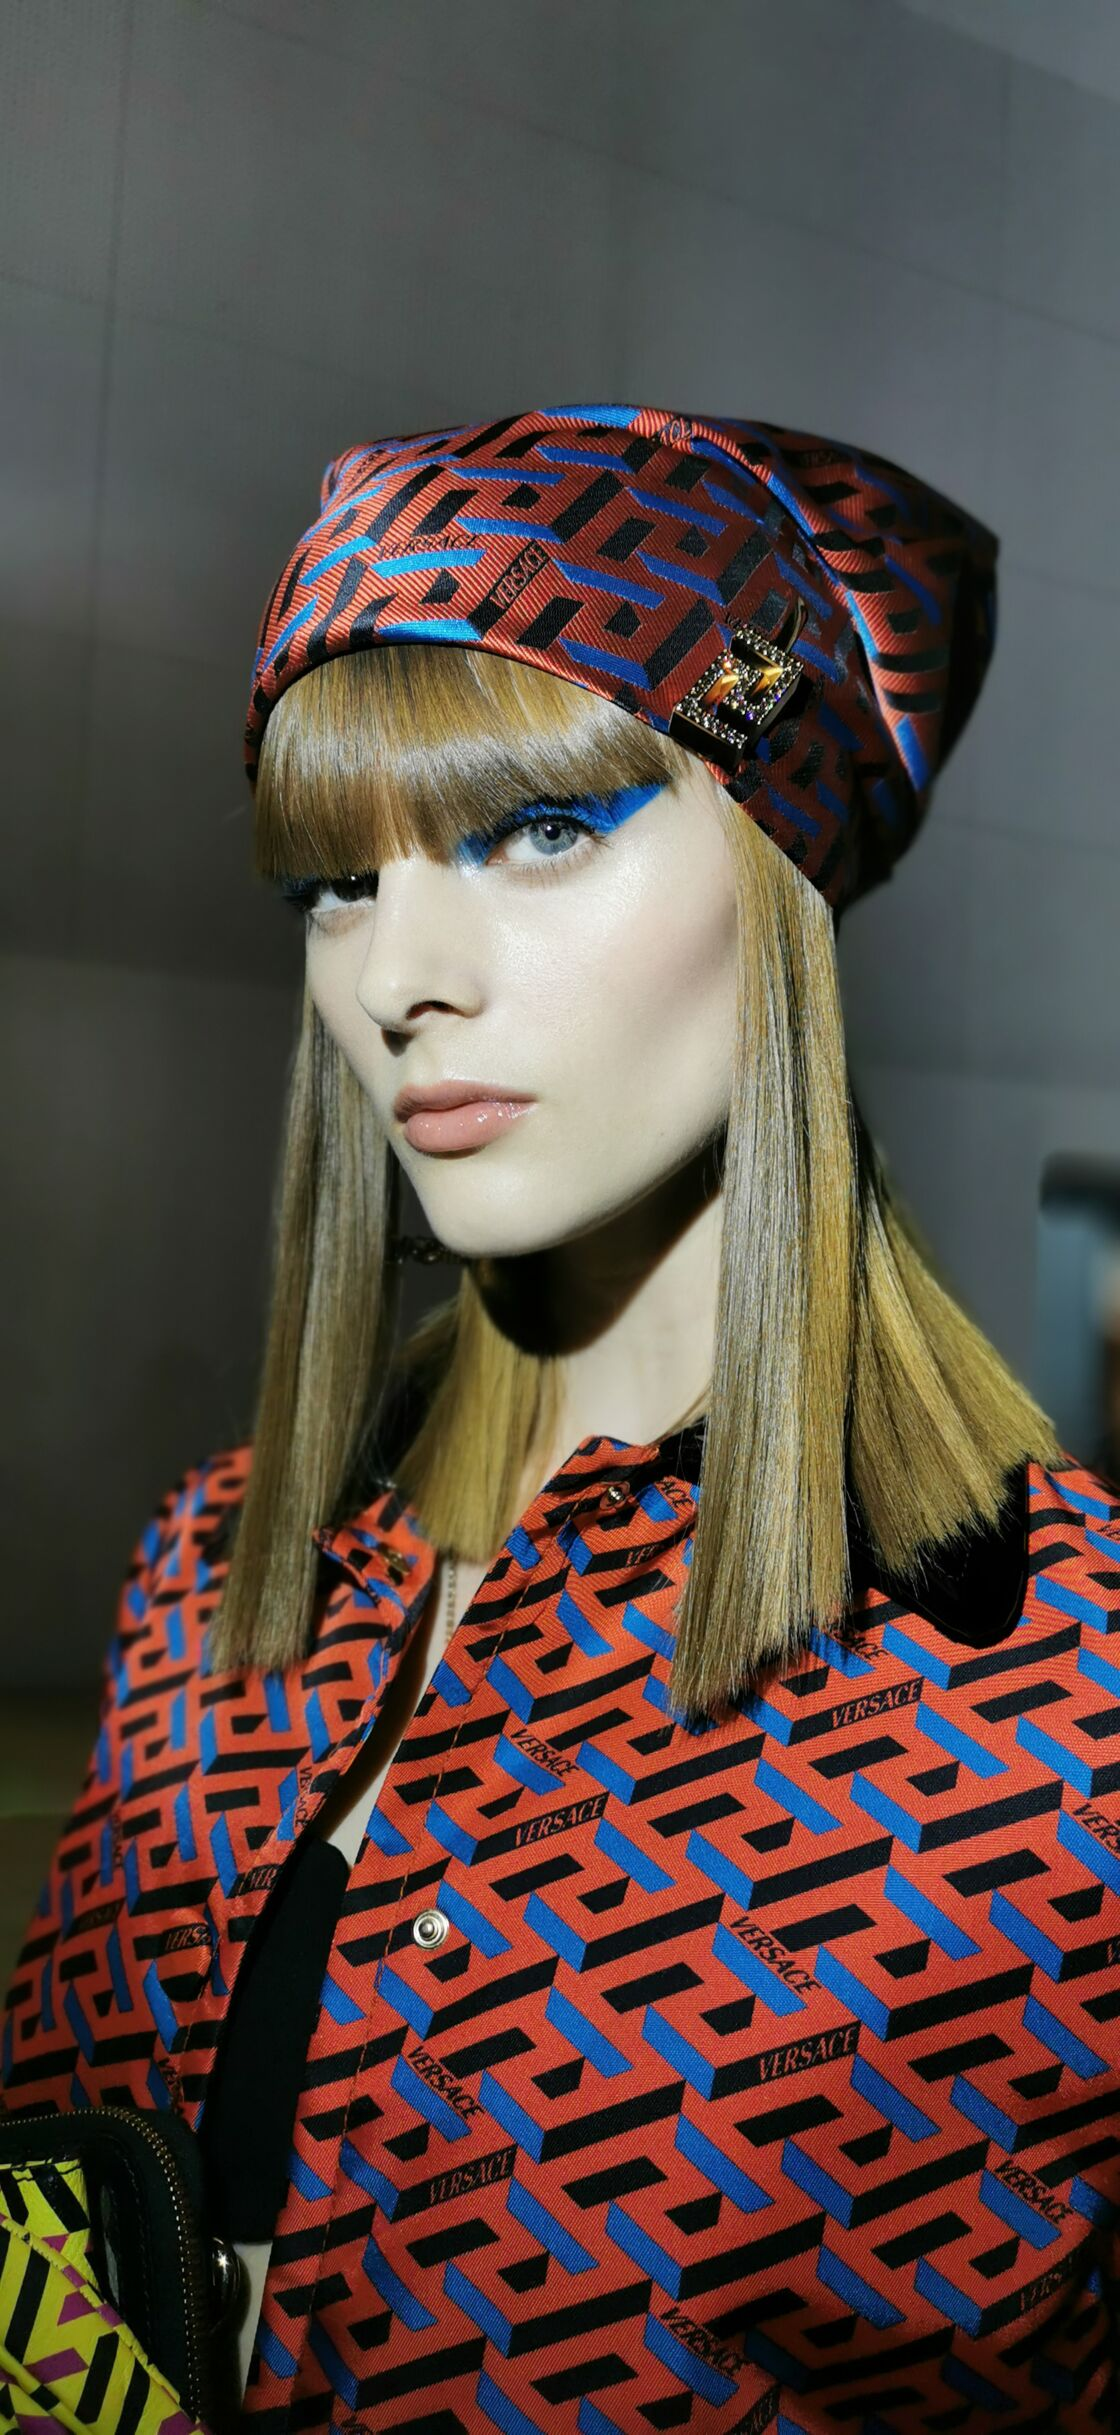 Le regard superstar et coloré de Pat Mc Grath pour Versace